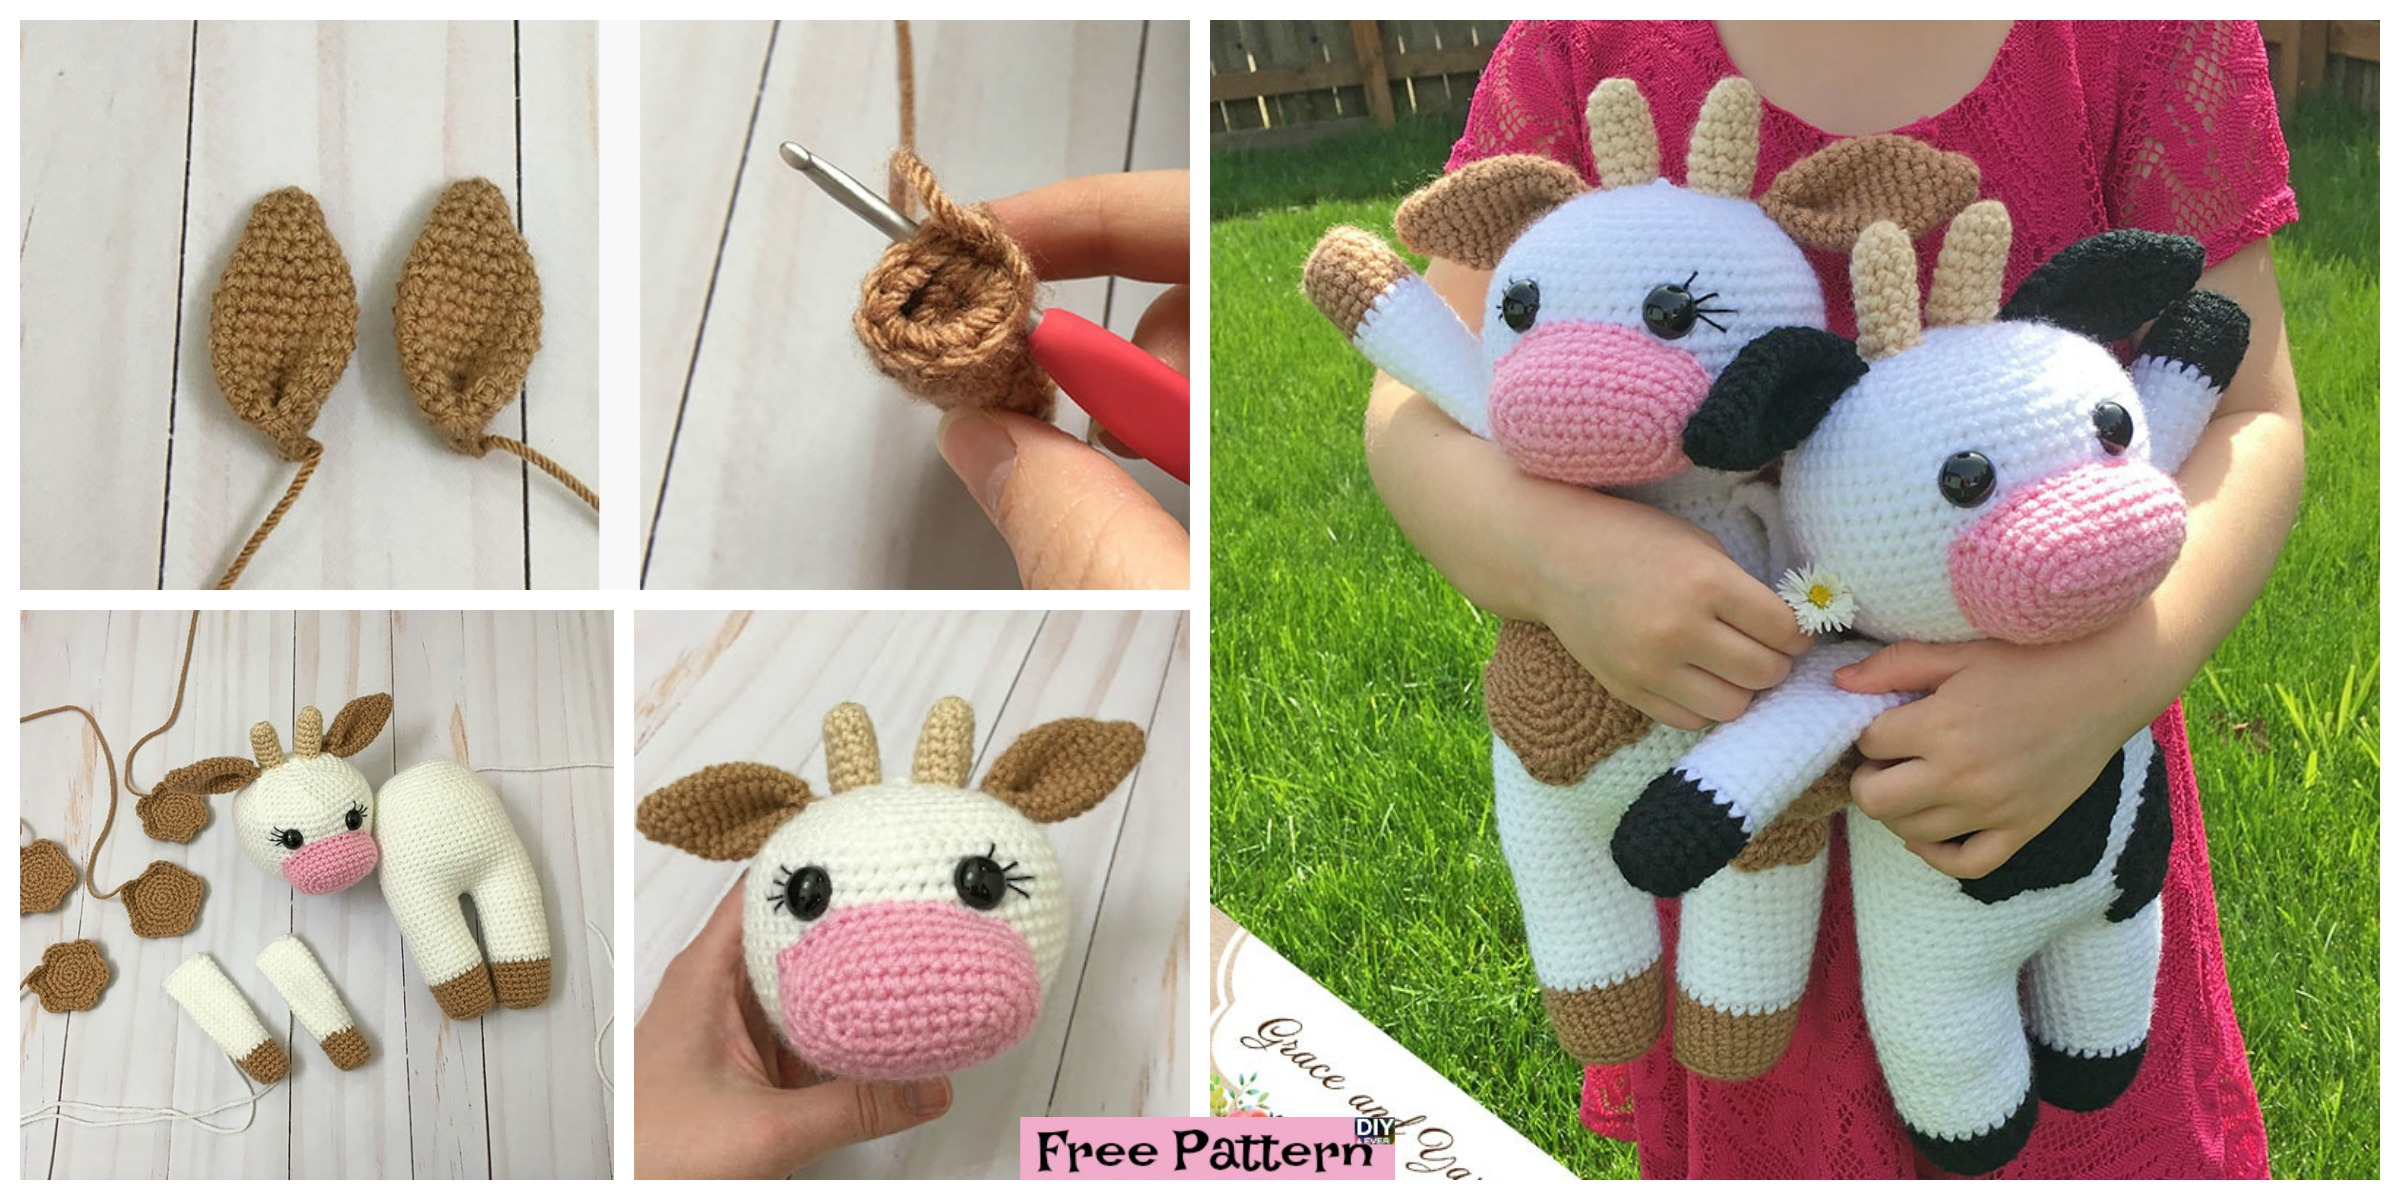 Watch this: CROCHET TOOTH PATTERN, Amigurumi crochet tooth fairy ... | 1200x2400